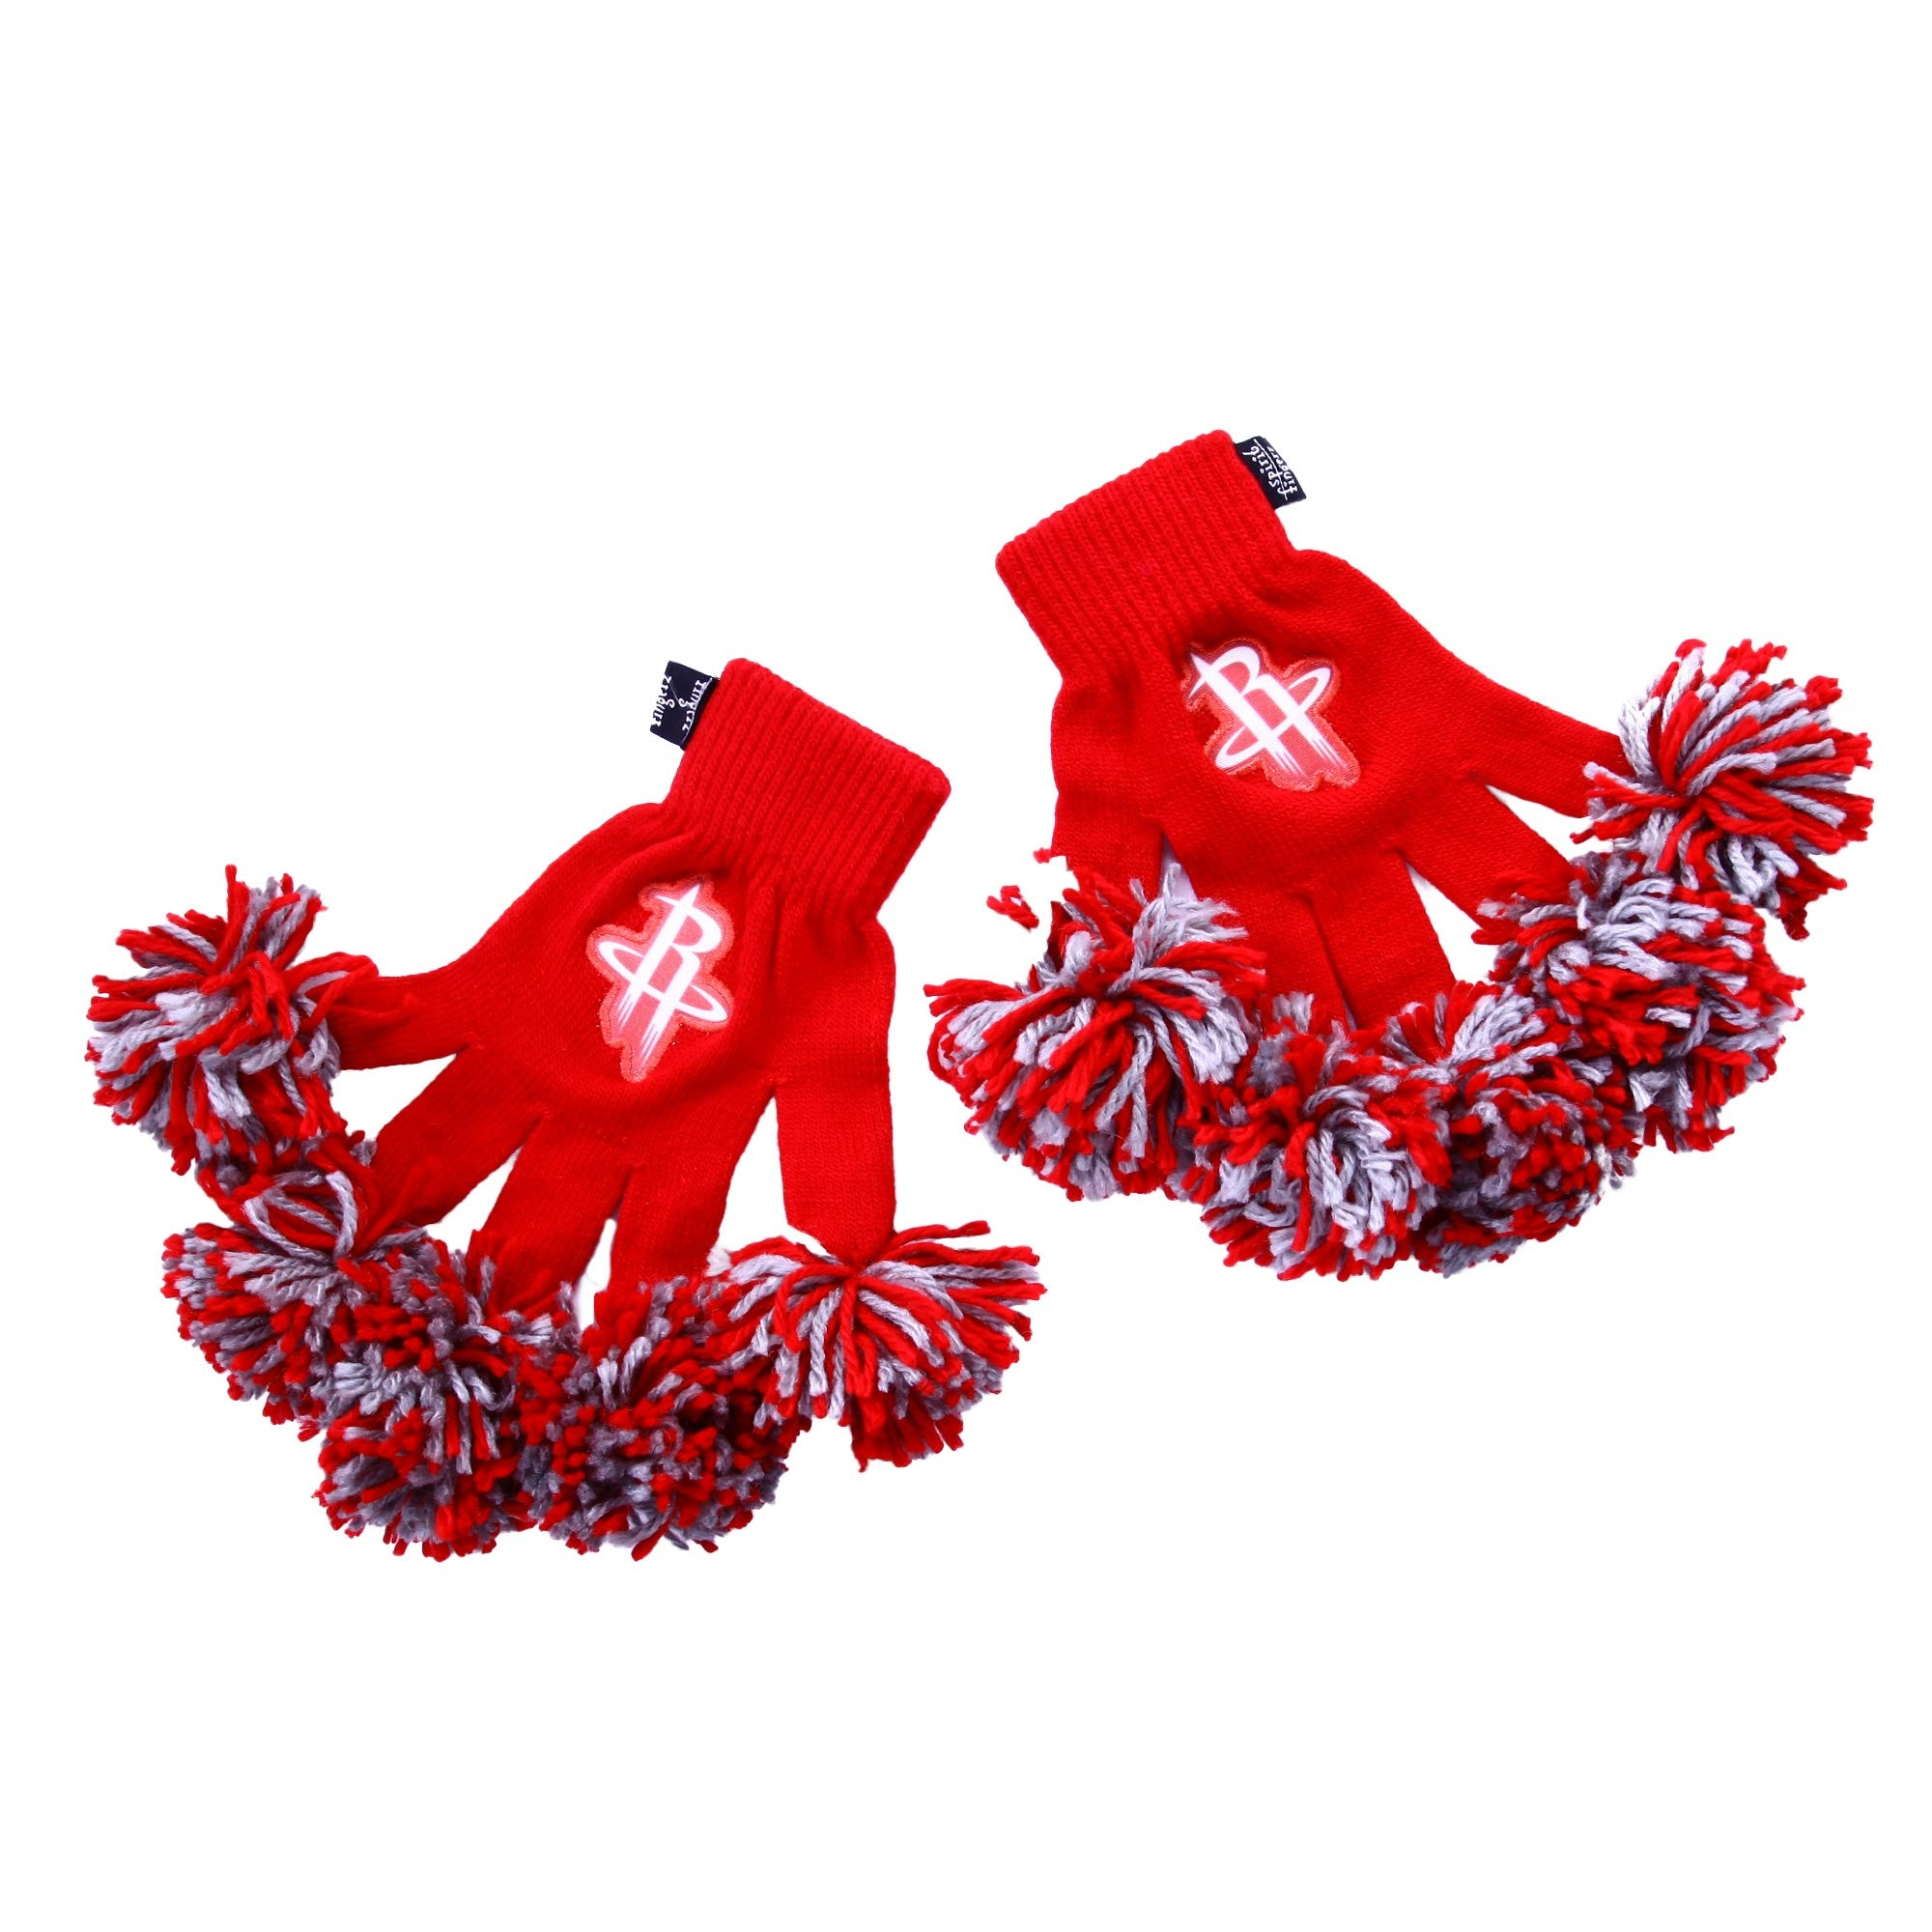 Houston Rockets NBA Spirit Fingerz Cheerleading Pom-Pom Gloves